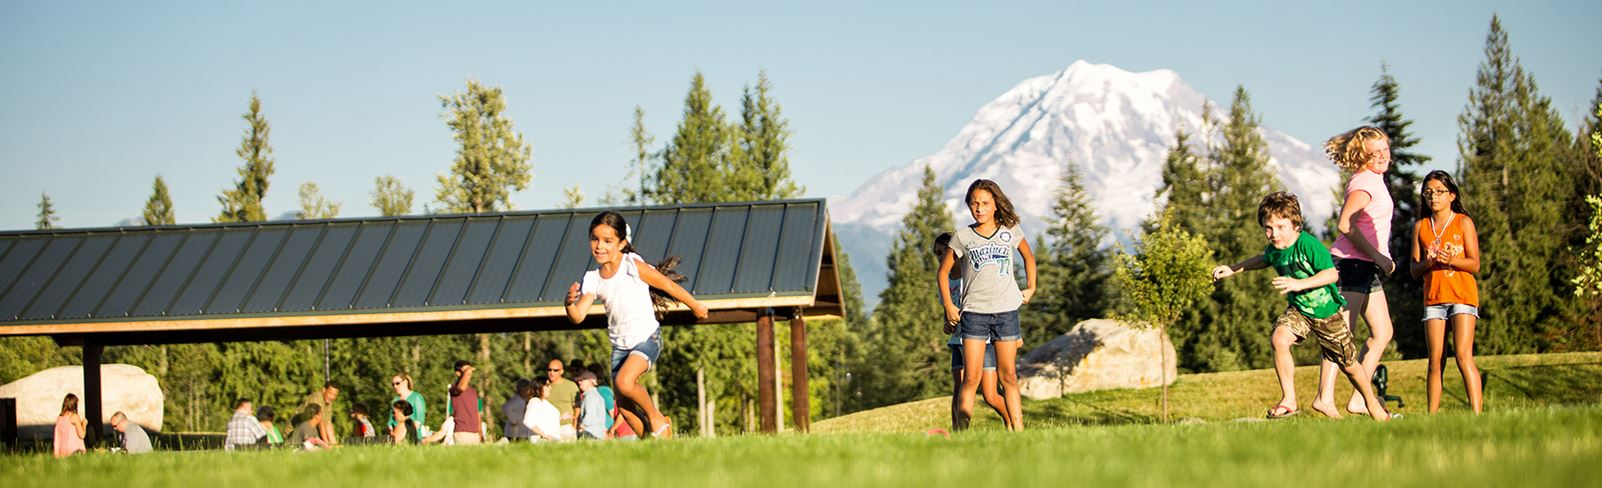 tehaleh-children-playing-in-the-field-with-Mount-Rainier-in-the-background.jpg (1)